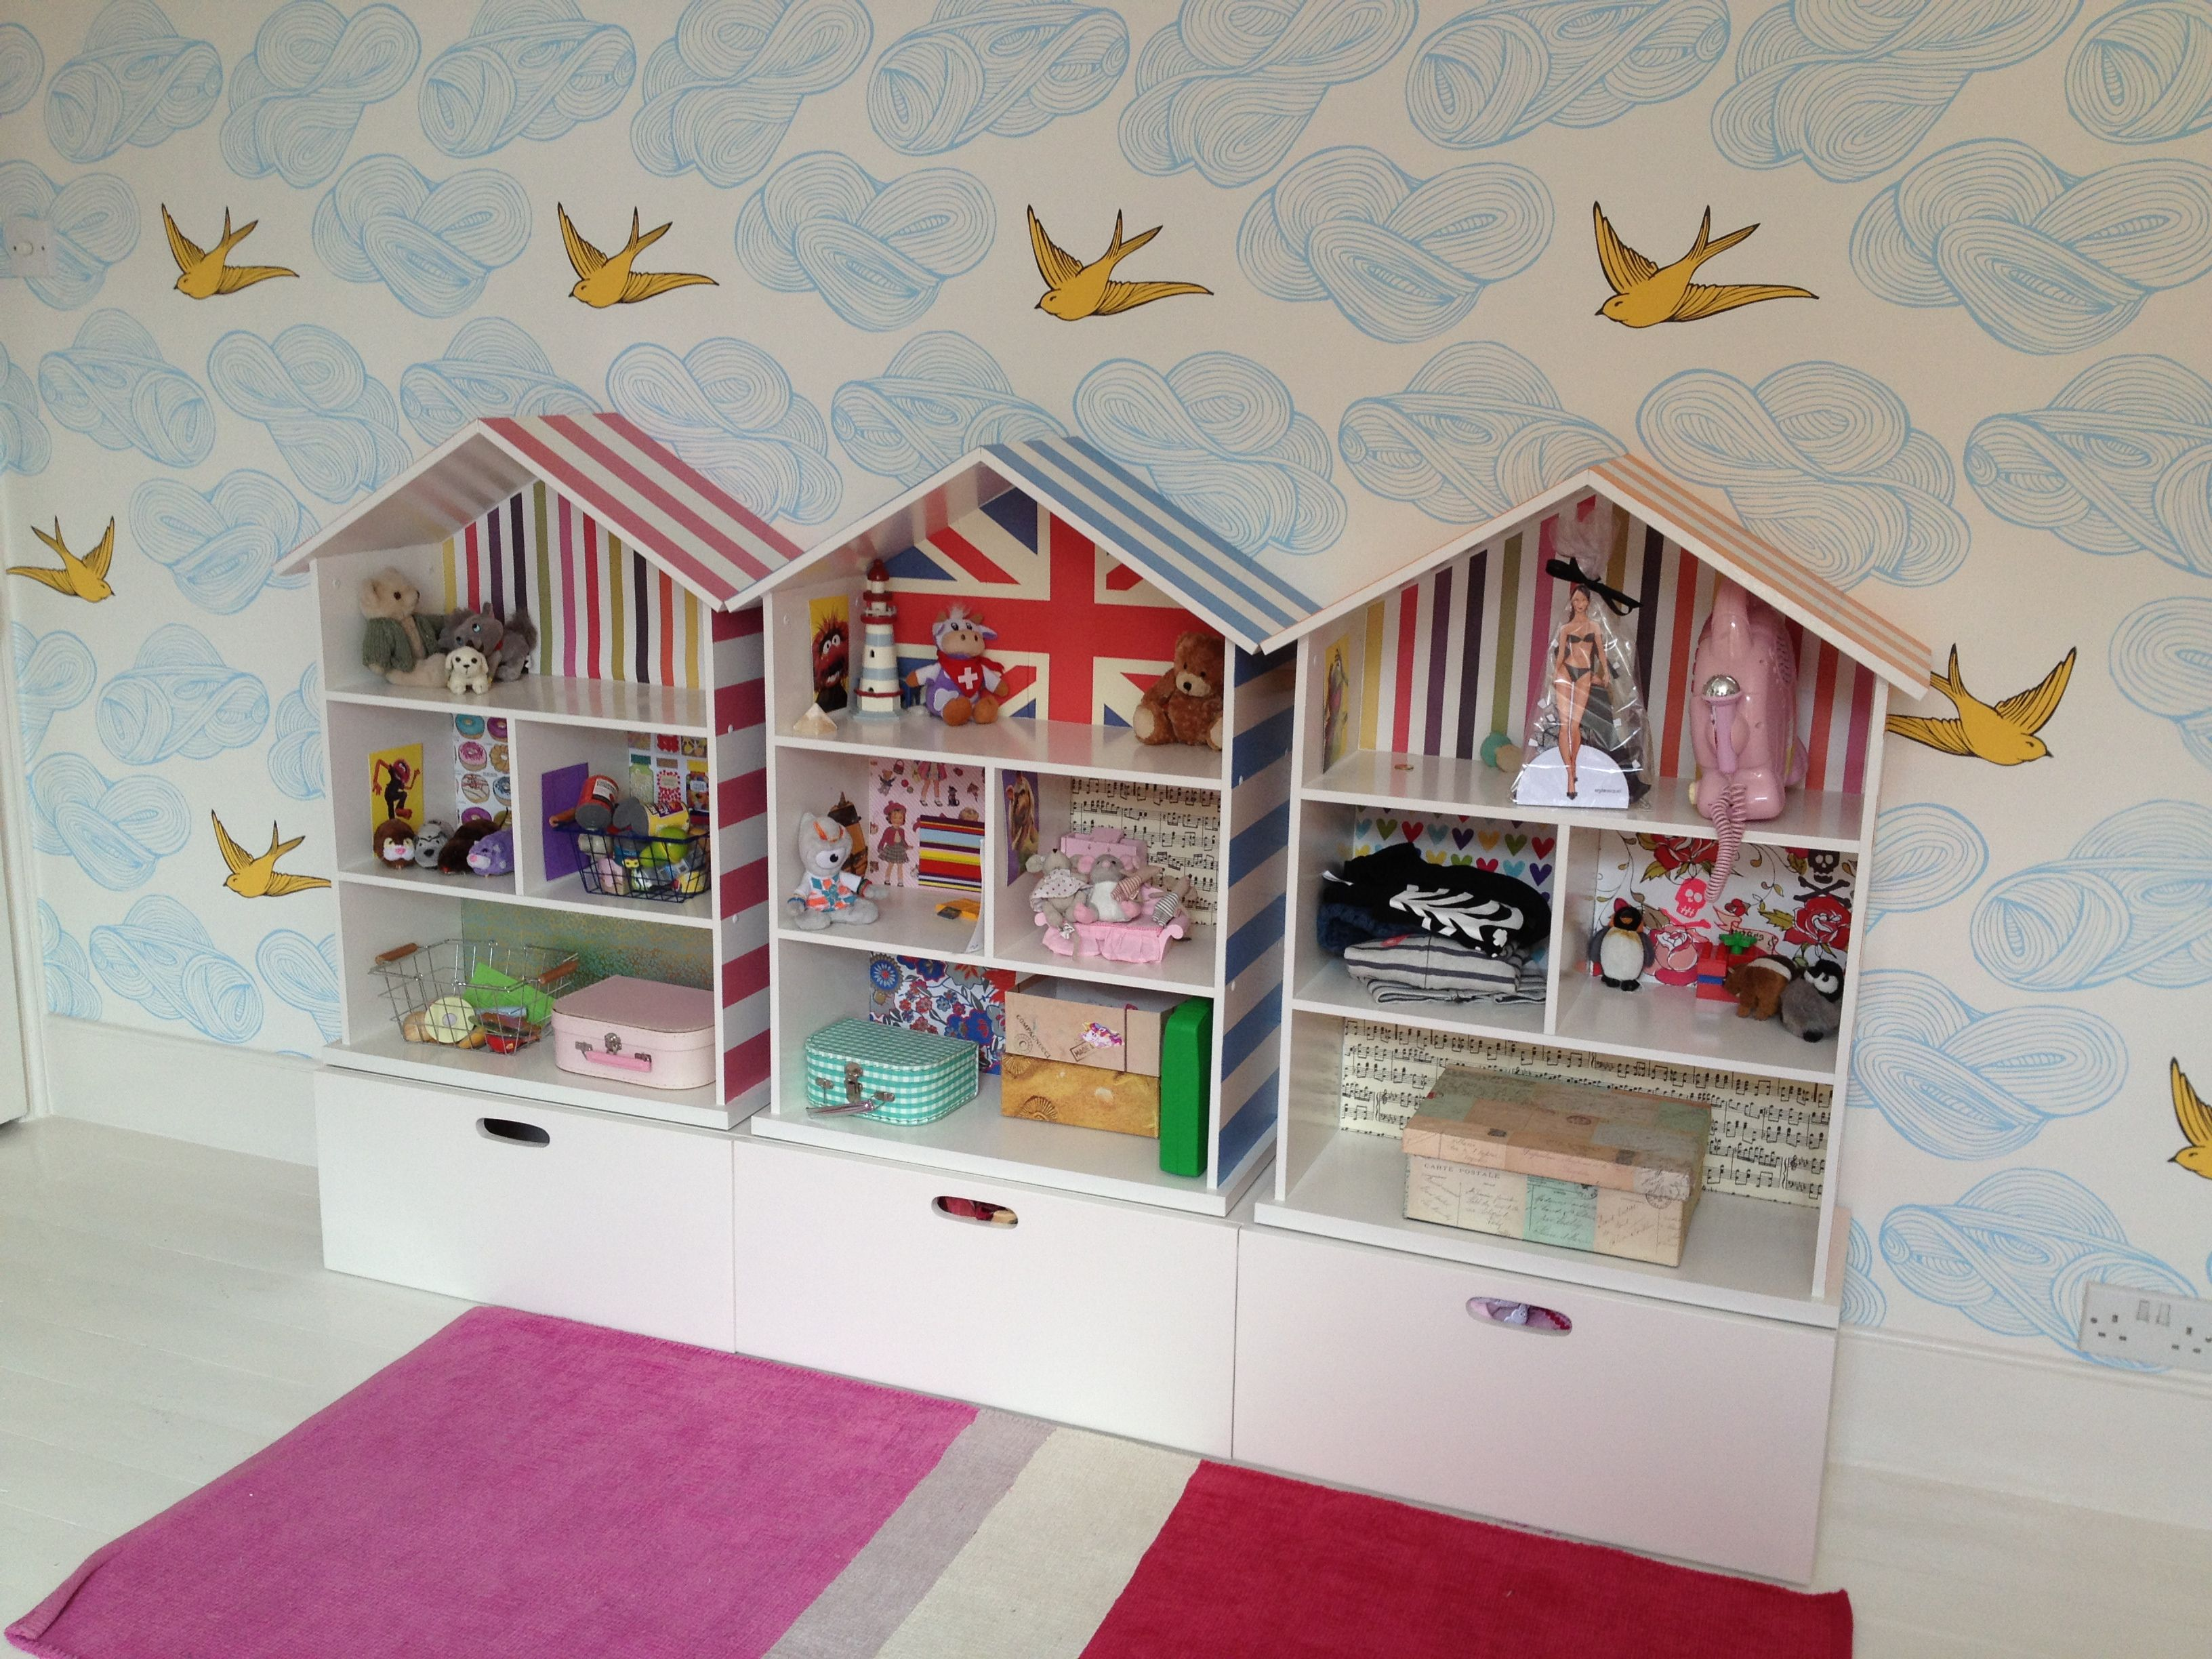 Dolls House shelves from Argos painted and decorated to look like